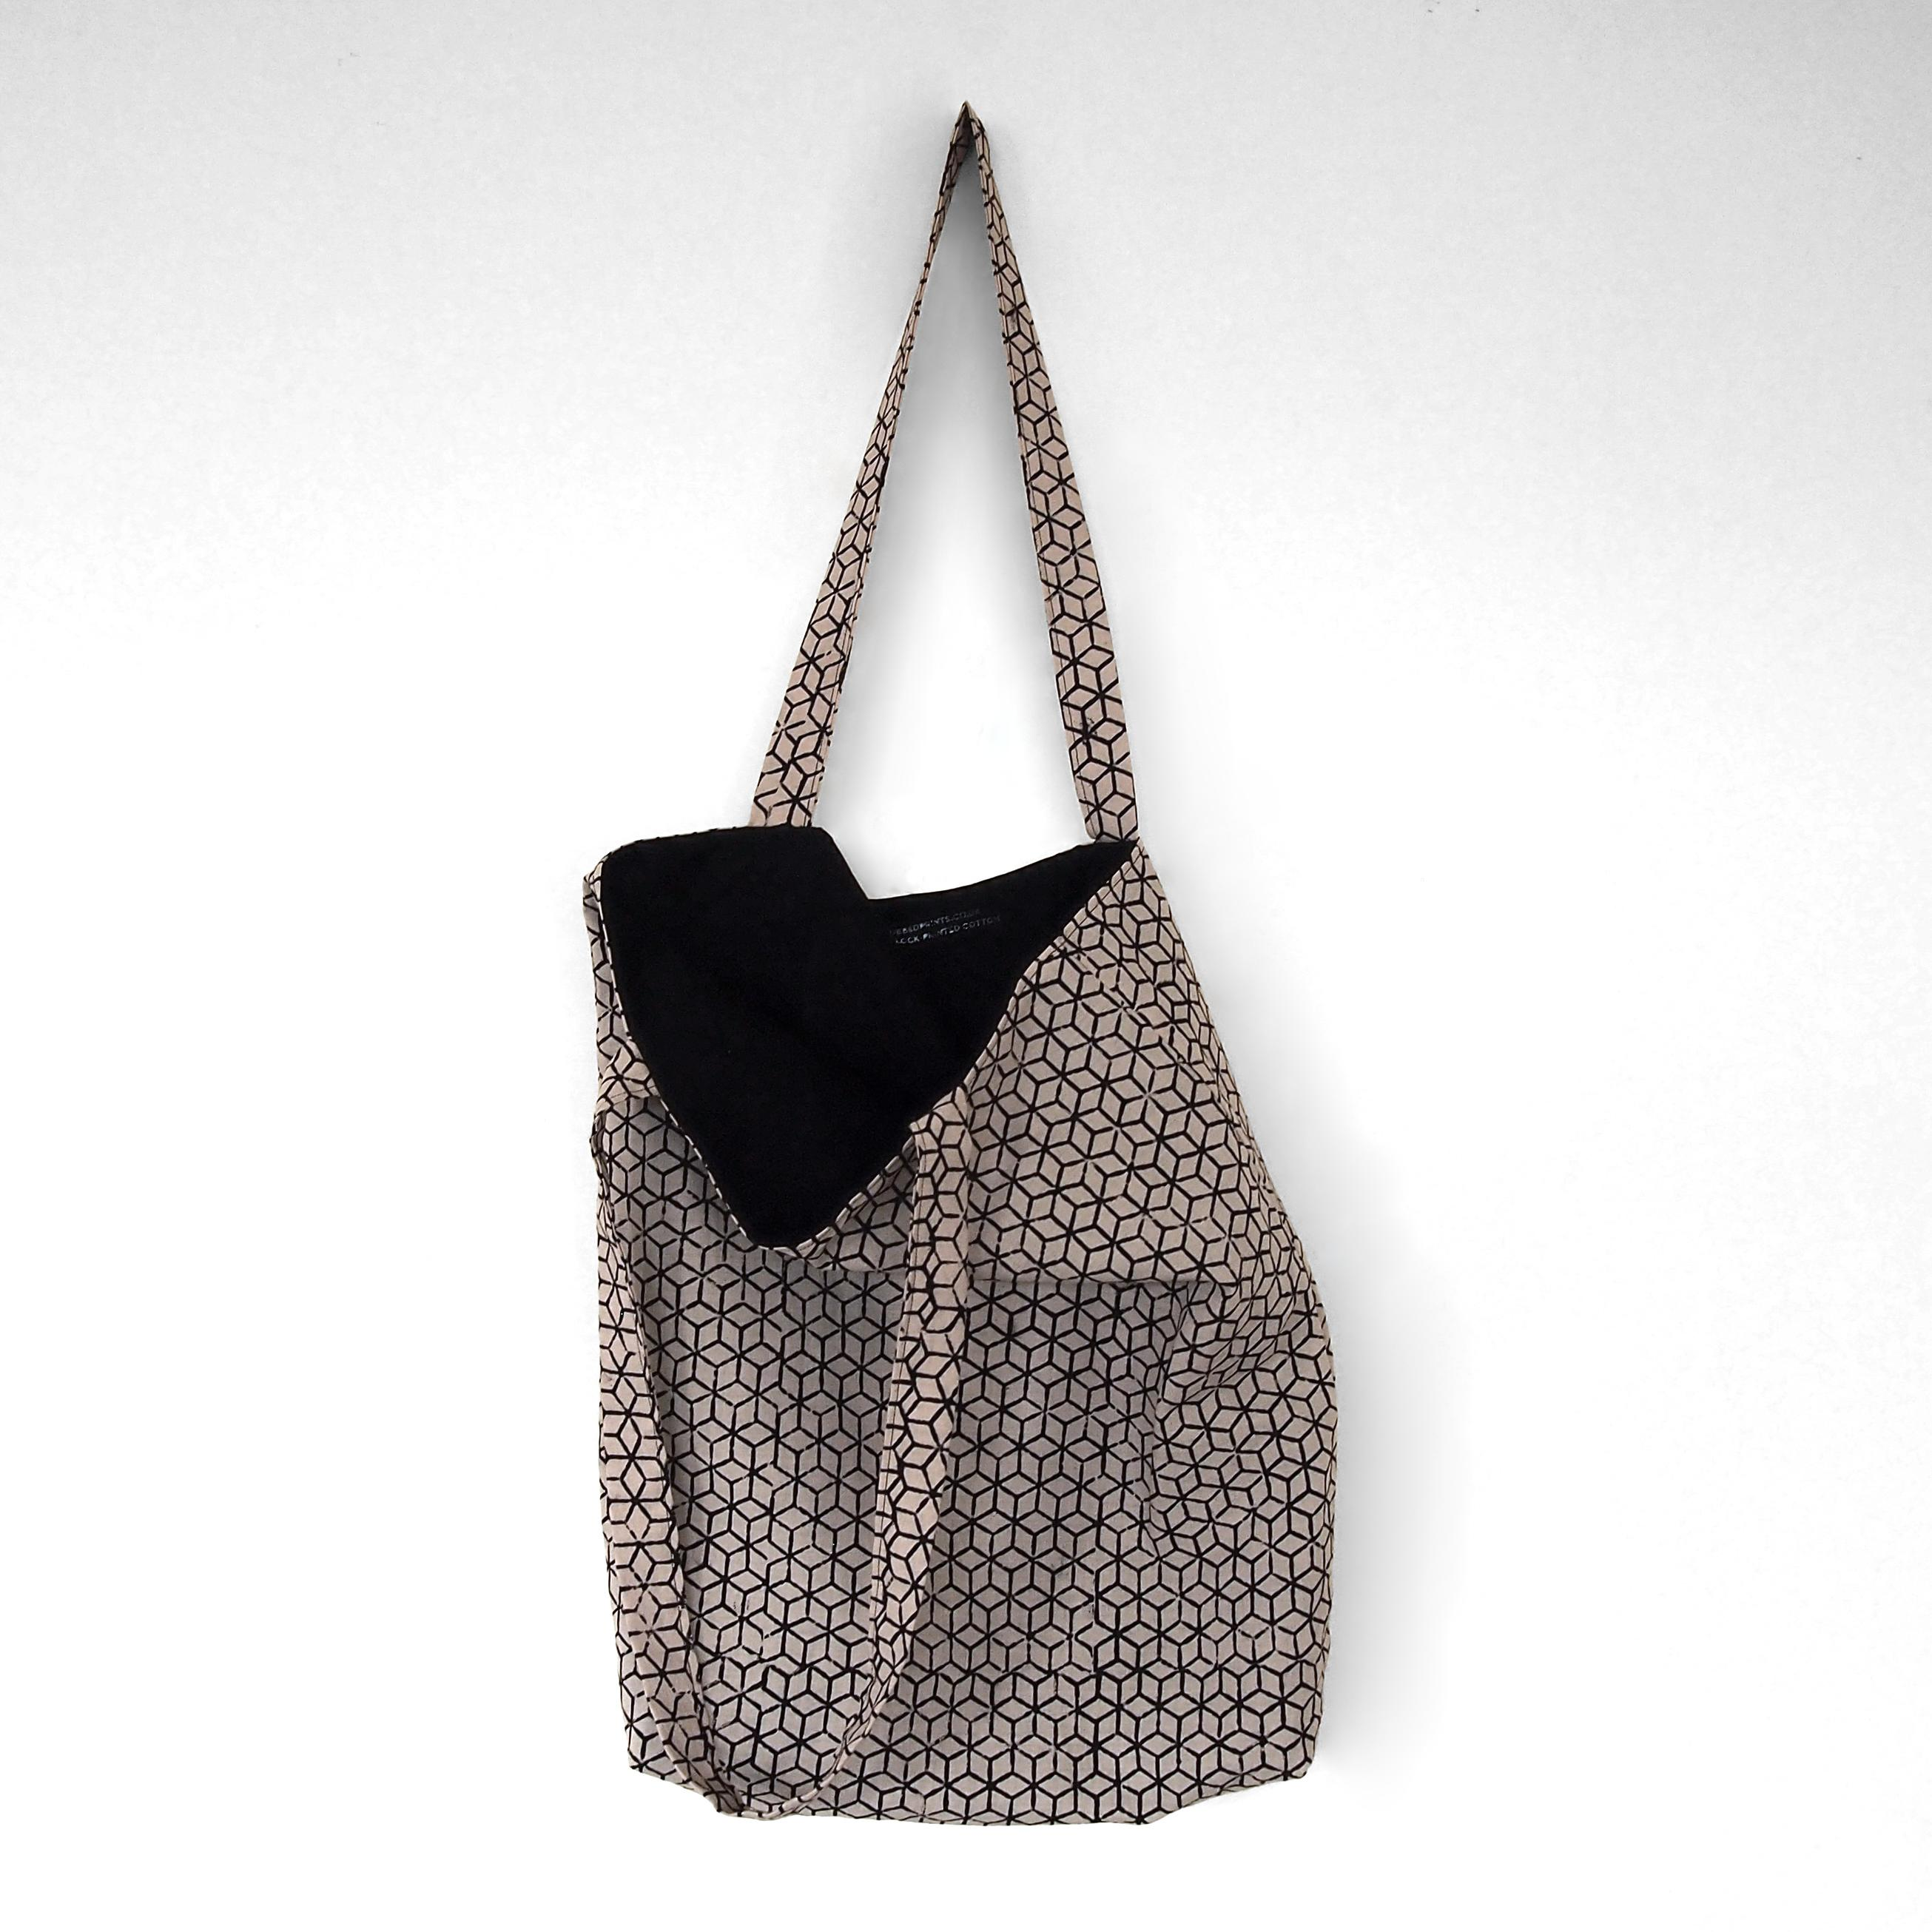 block printed cotton tote bag, natural dye, beige, black tumbling block, lined with black cotton, open